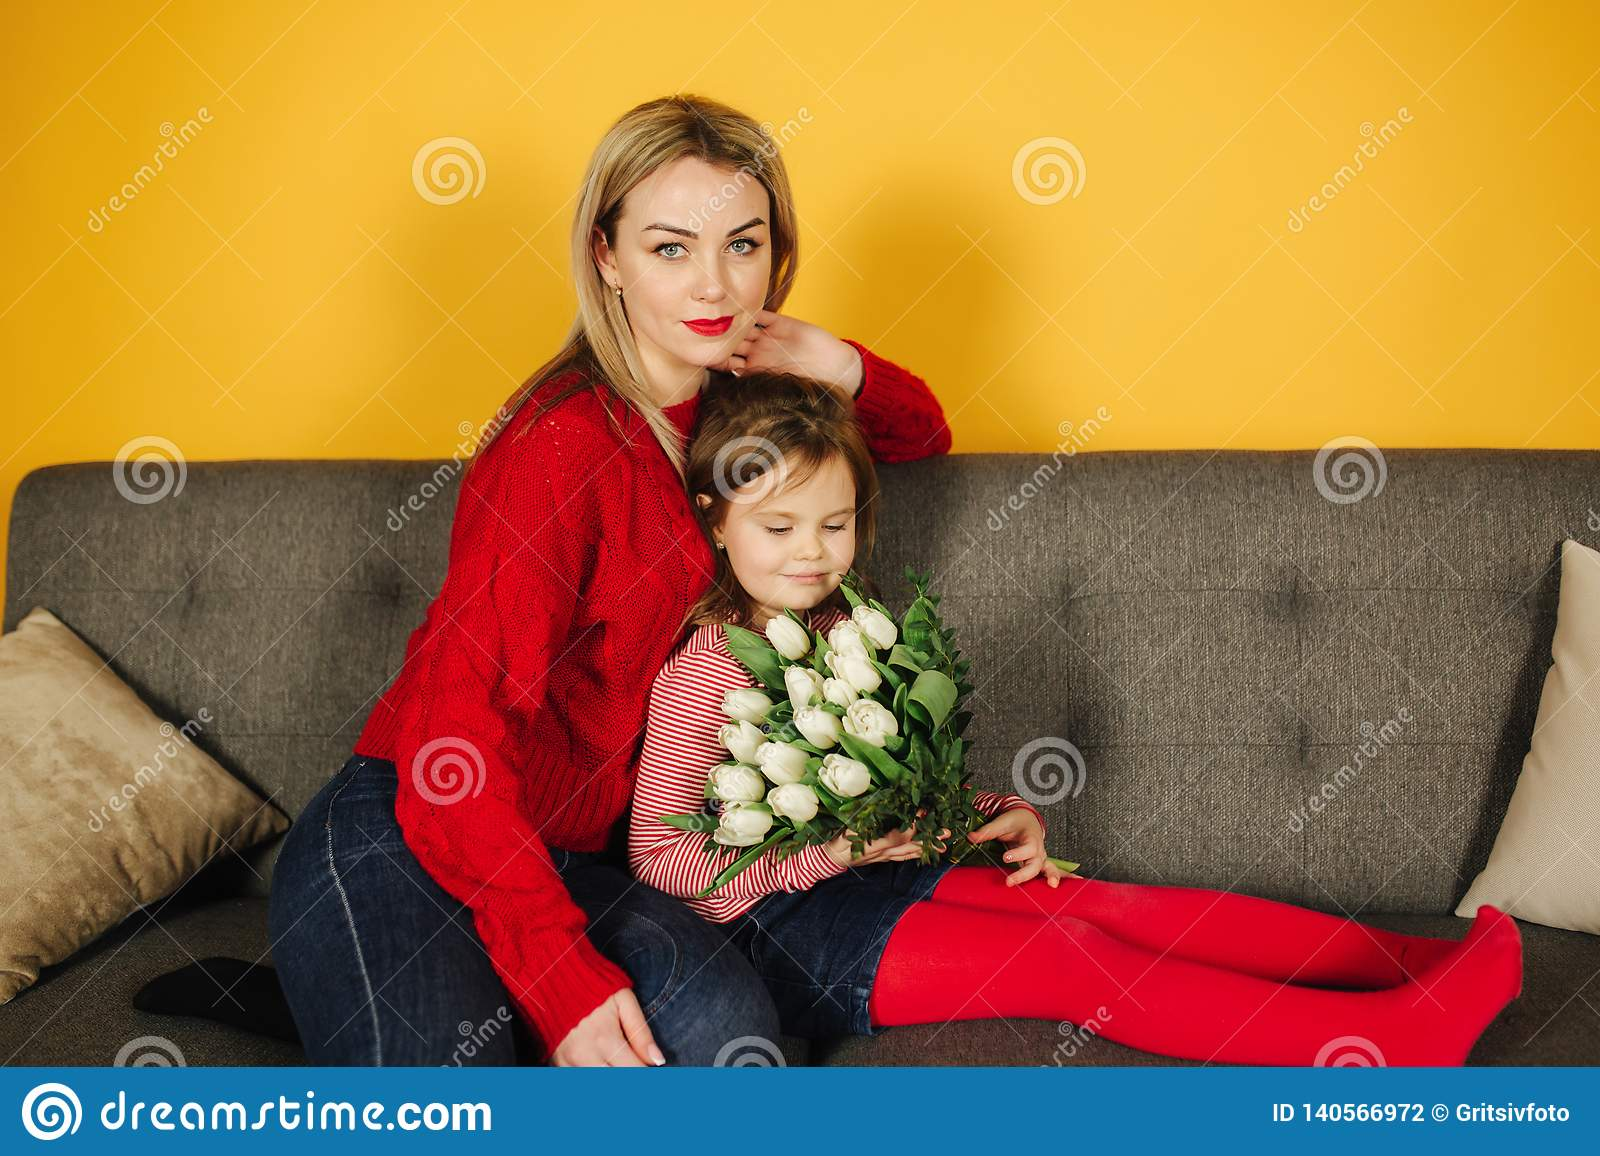 Young mother with doughter sitting on grey sofa. Yellow Background in studio. Flowers 8th of march